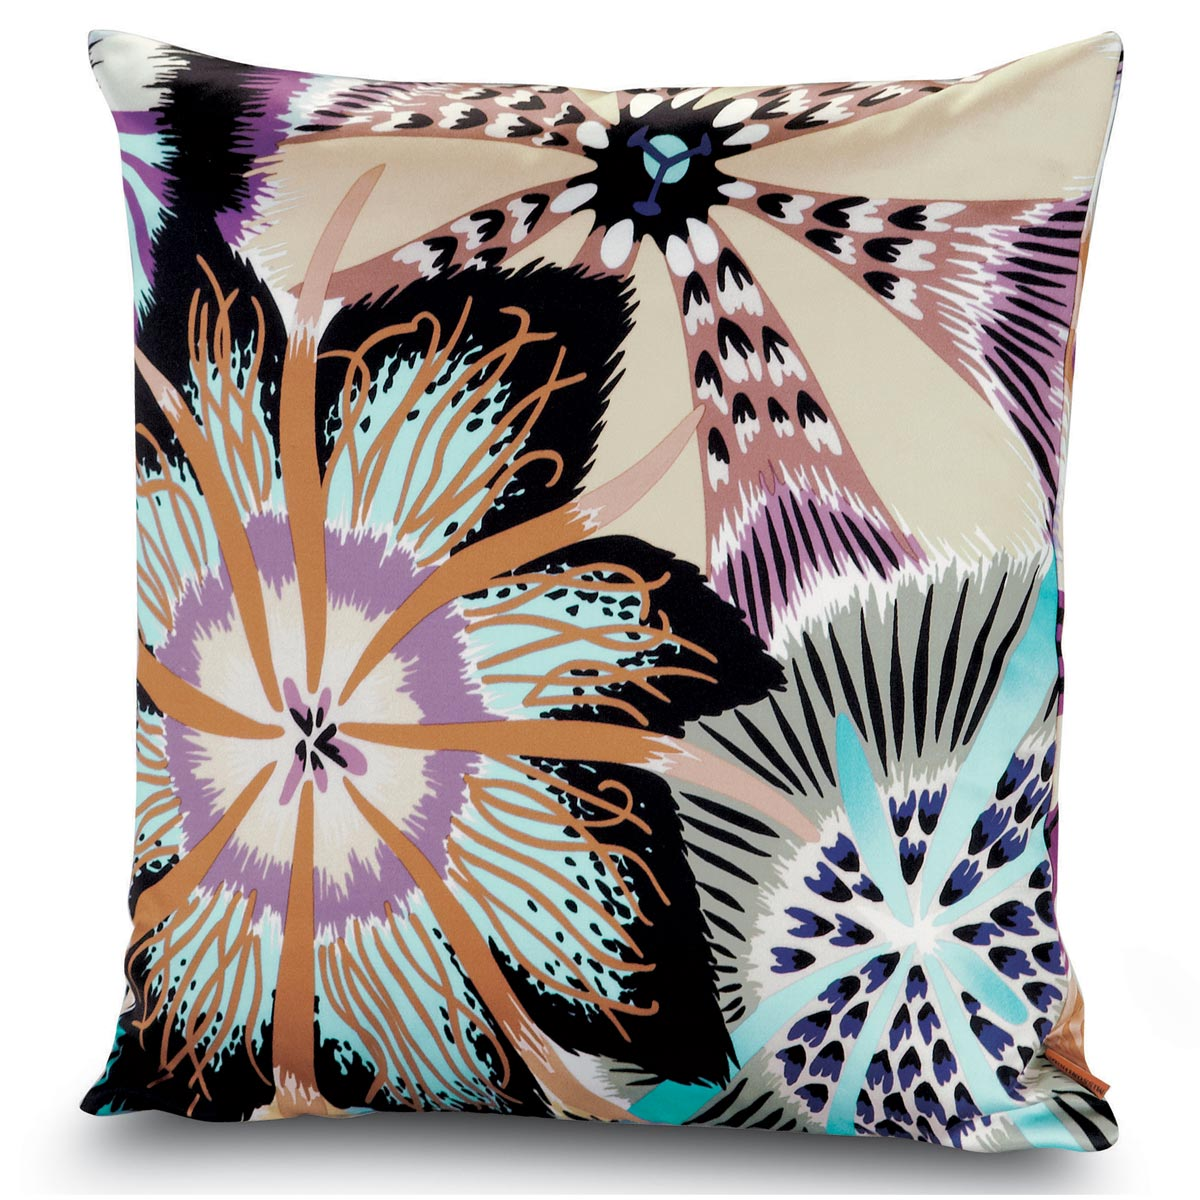 7be20a60457f Passiflora Giant Petit Carré Cushion Missoni Home · Passiflora Giant Petit Carré  Cushion Missoni Home · Passiflora Giant Petit Carré Cushion ...